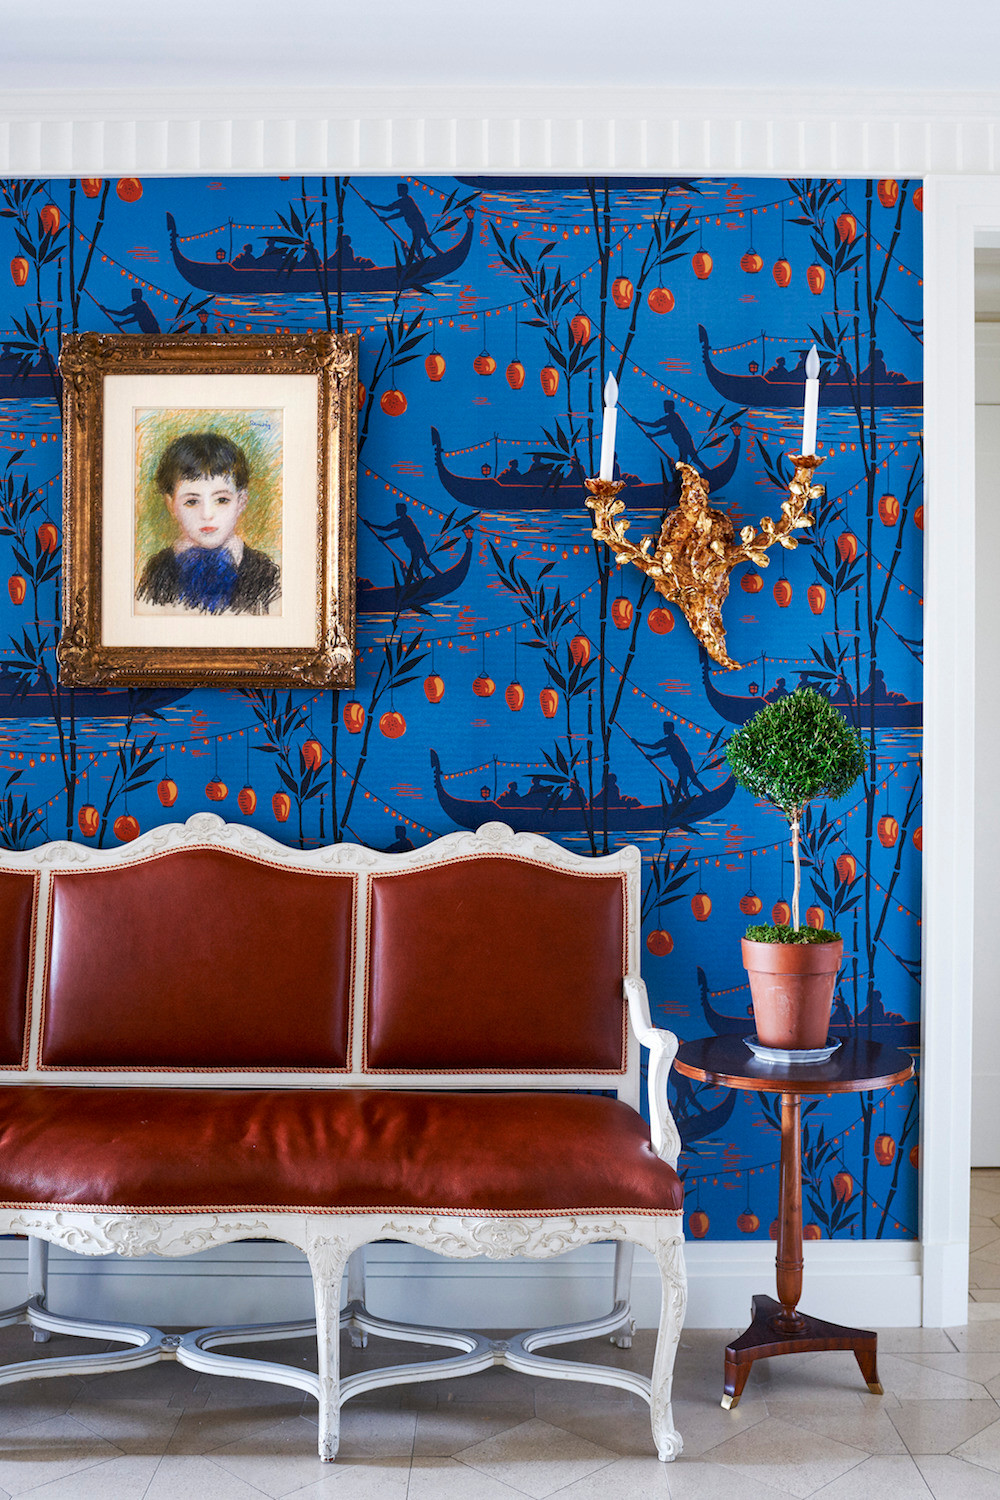 Beautiful split complementary color scheme, harmonious, yet interesting! Image: Alex Papachristidis, wallpaper by Cole and Son